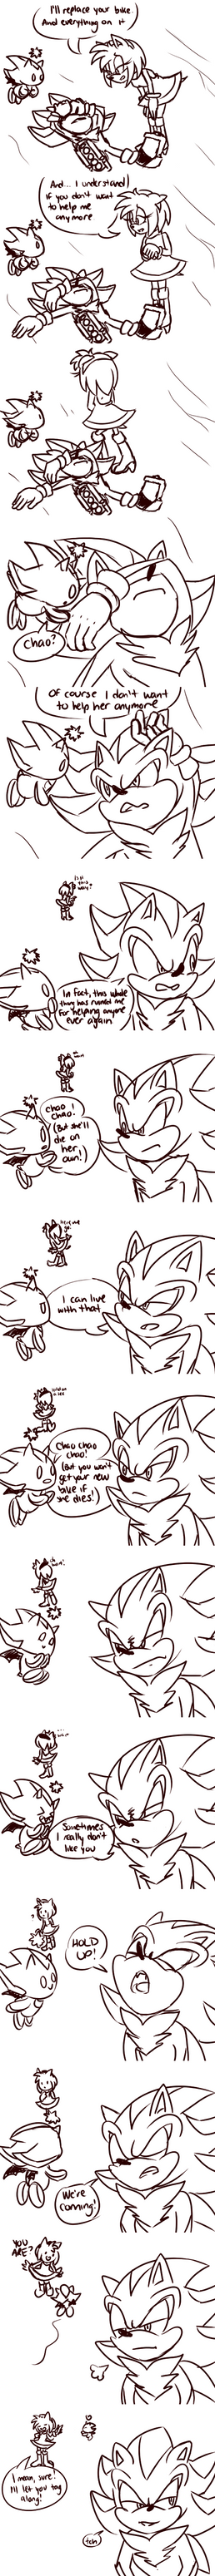 comic by sonicstarr